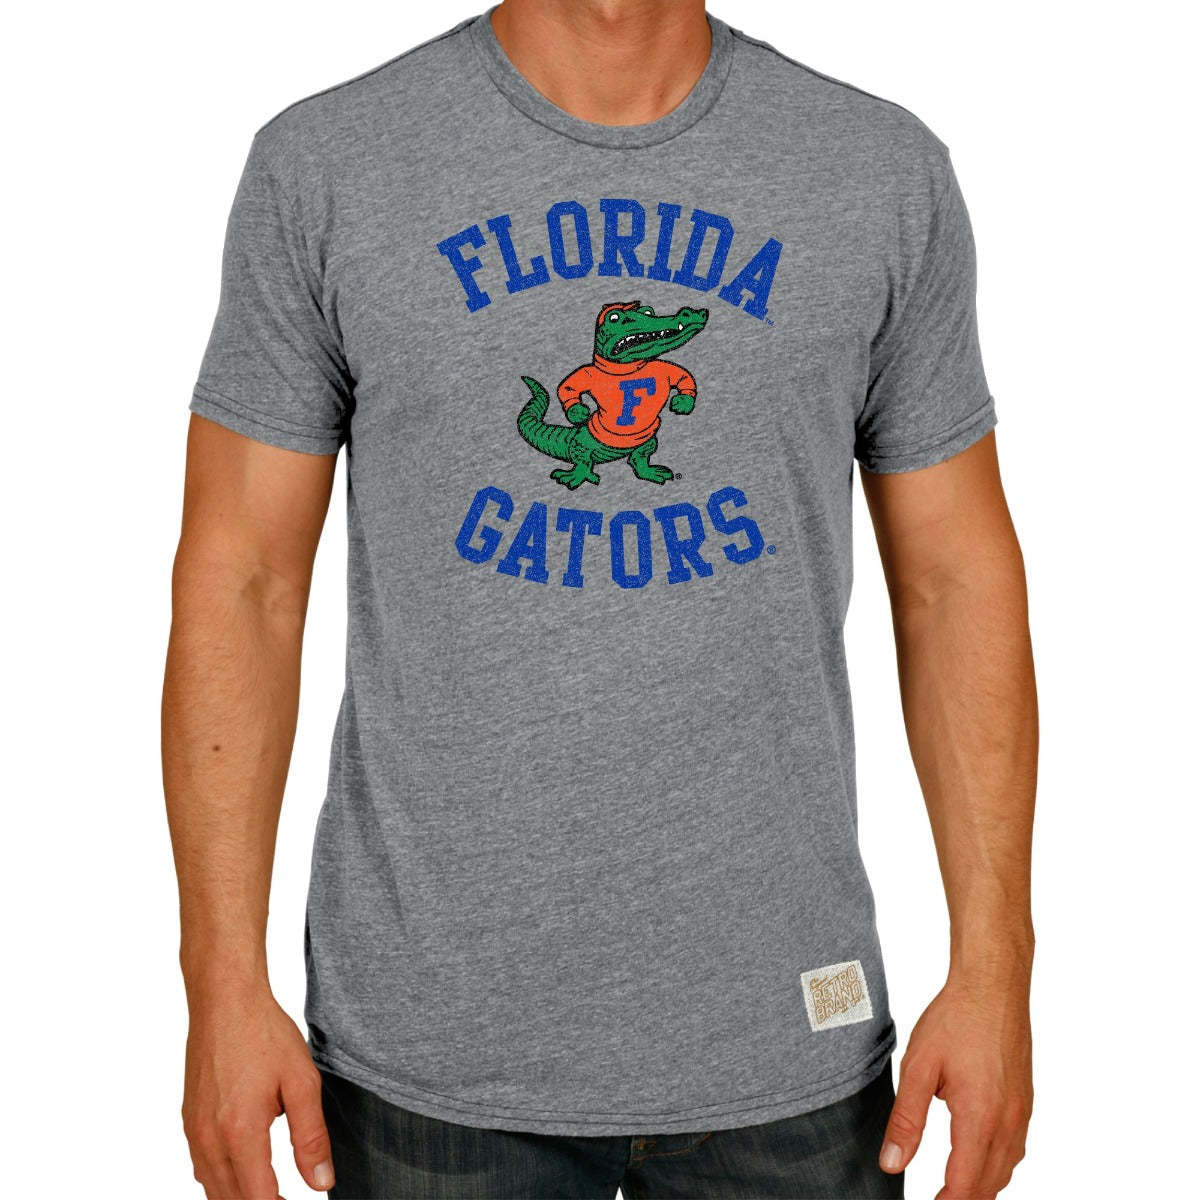 Florida Gators Men's Short Sleeve Triblend Tee